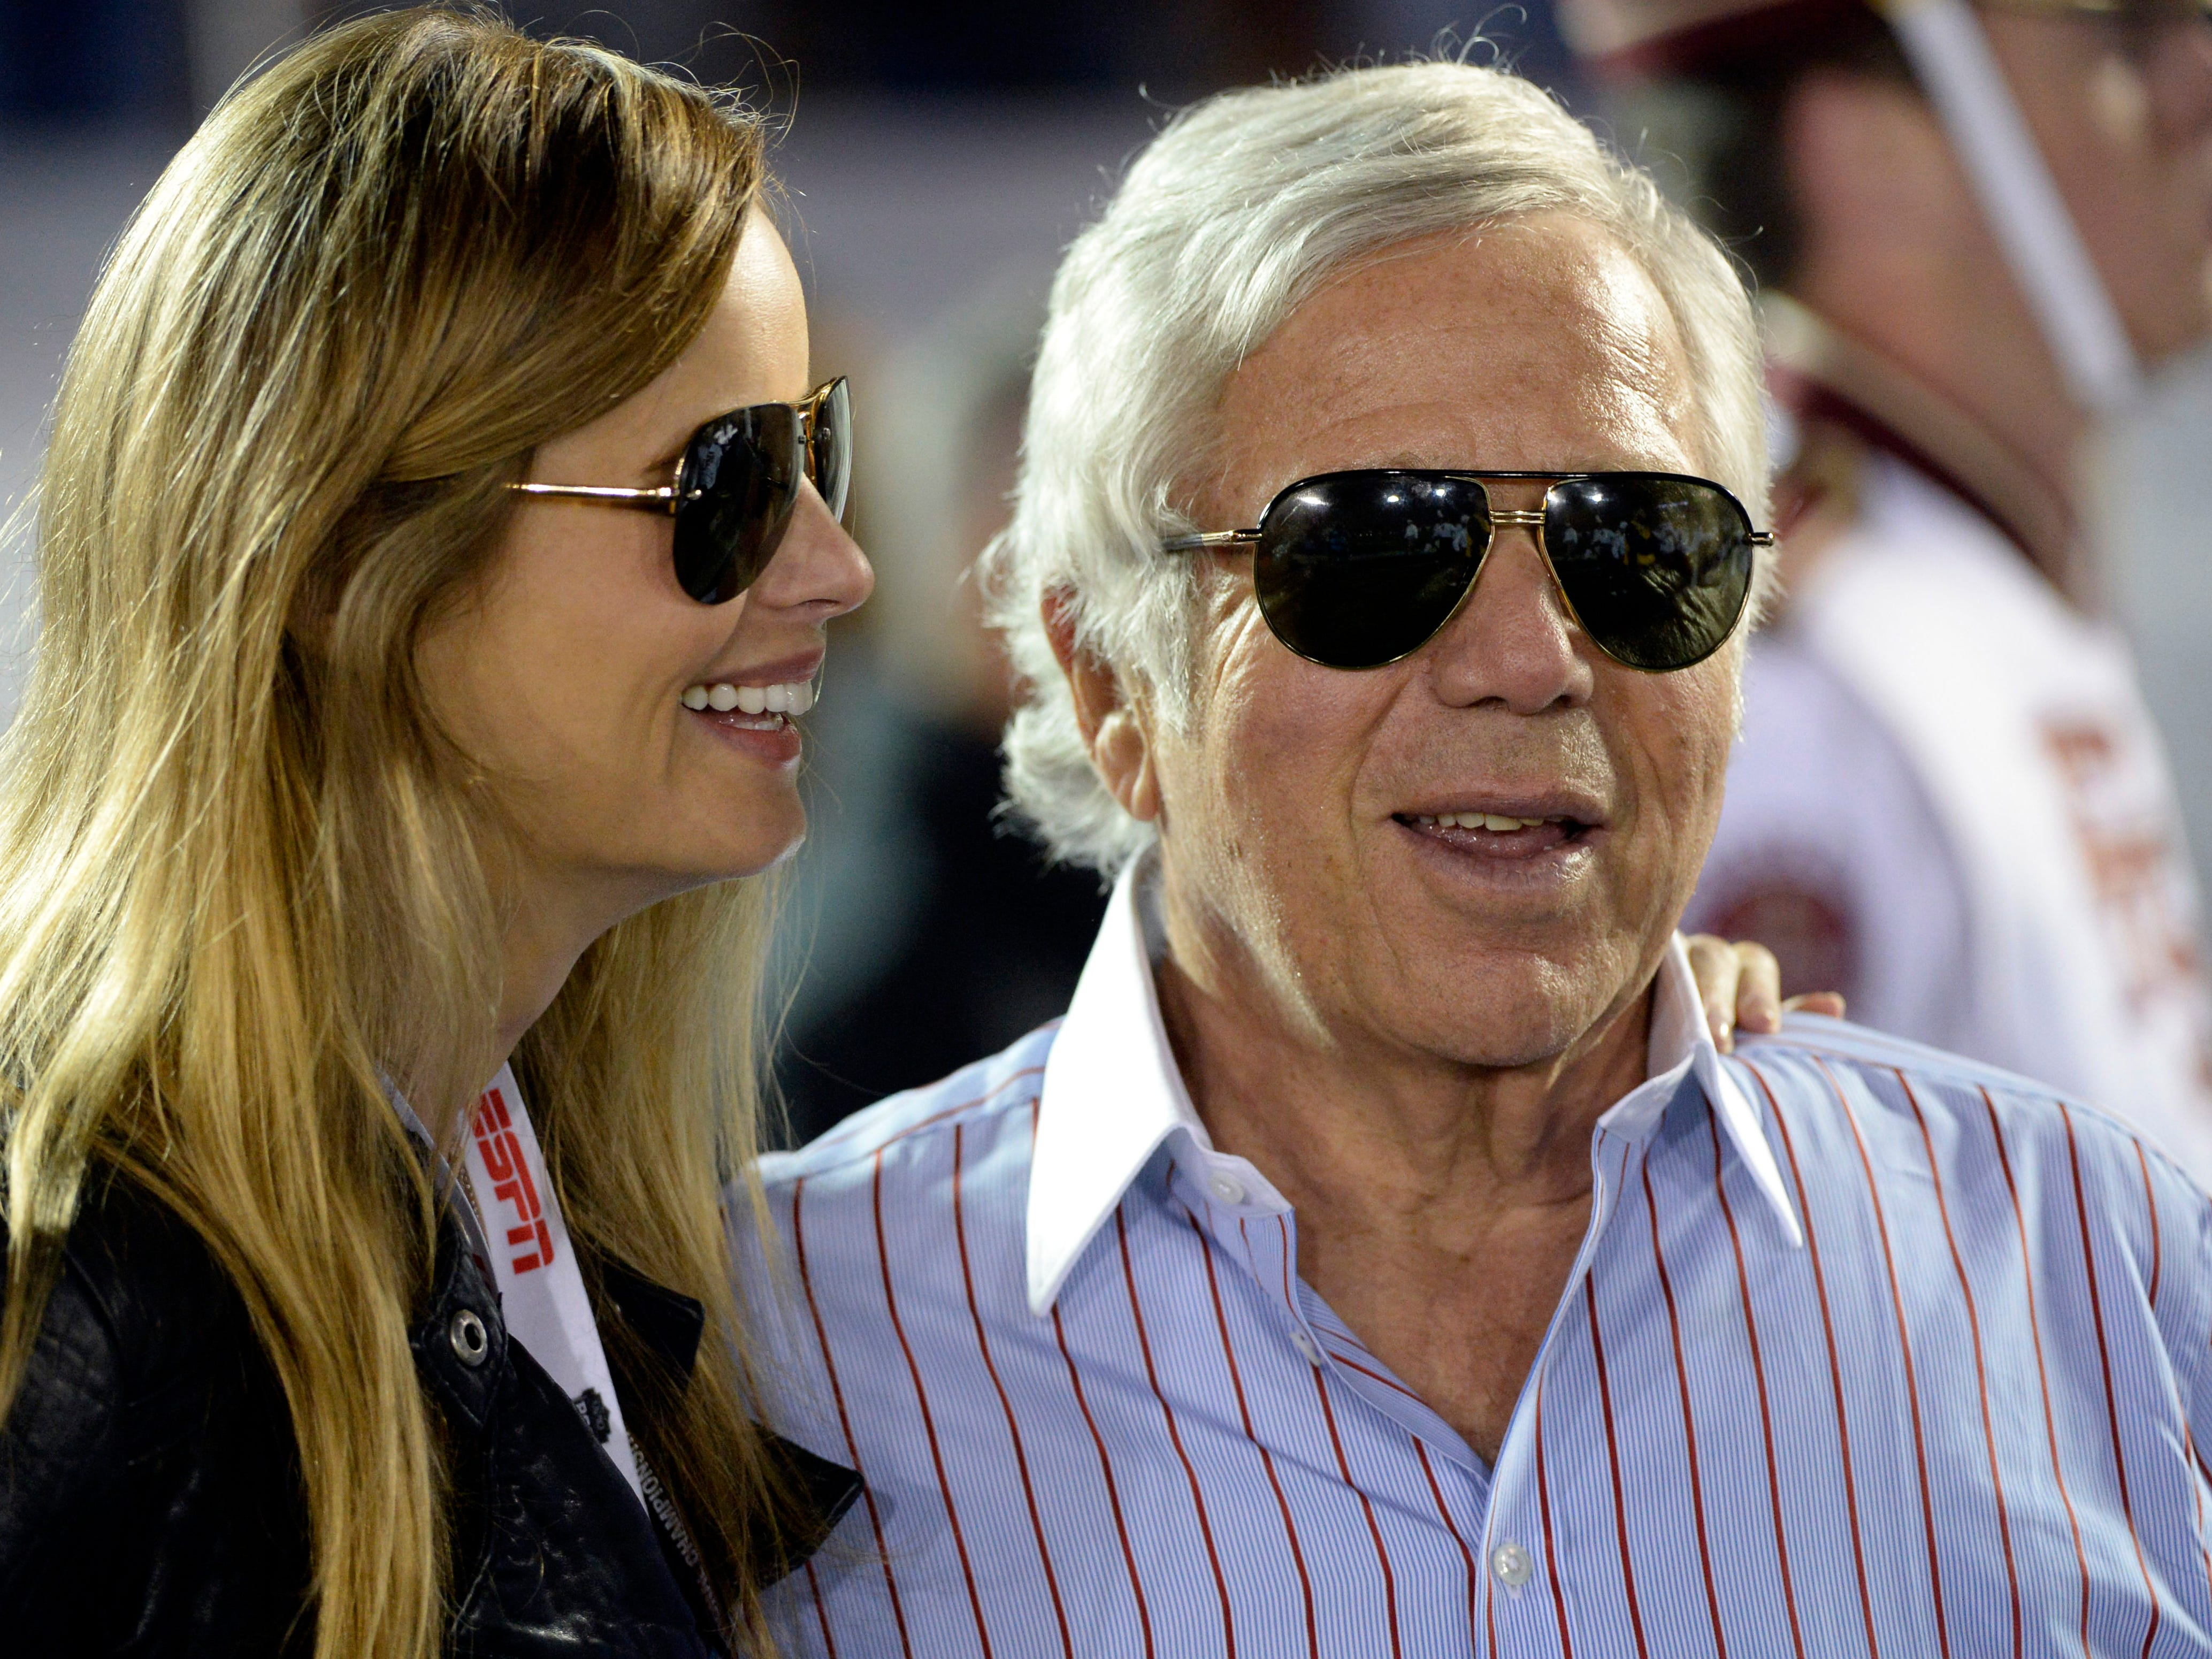 Kraft stands with his girlfriend Ricki Noel Lander on the field before the 2014 BCS National Championship game between Florida State Seminoles and Auburn Tigers at the Rose Bowl.